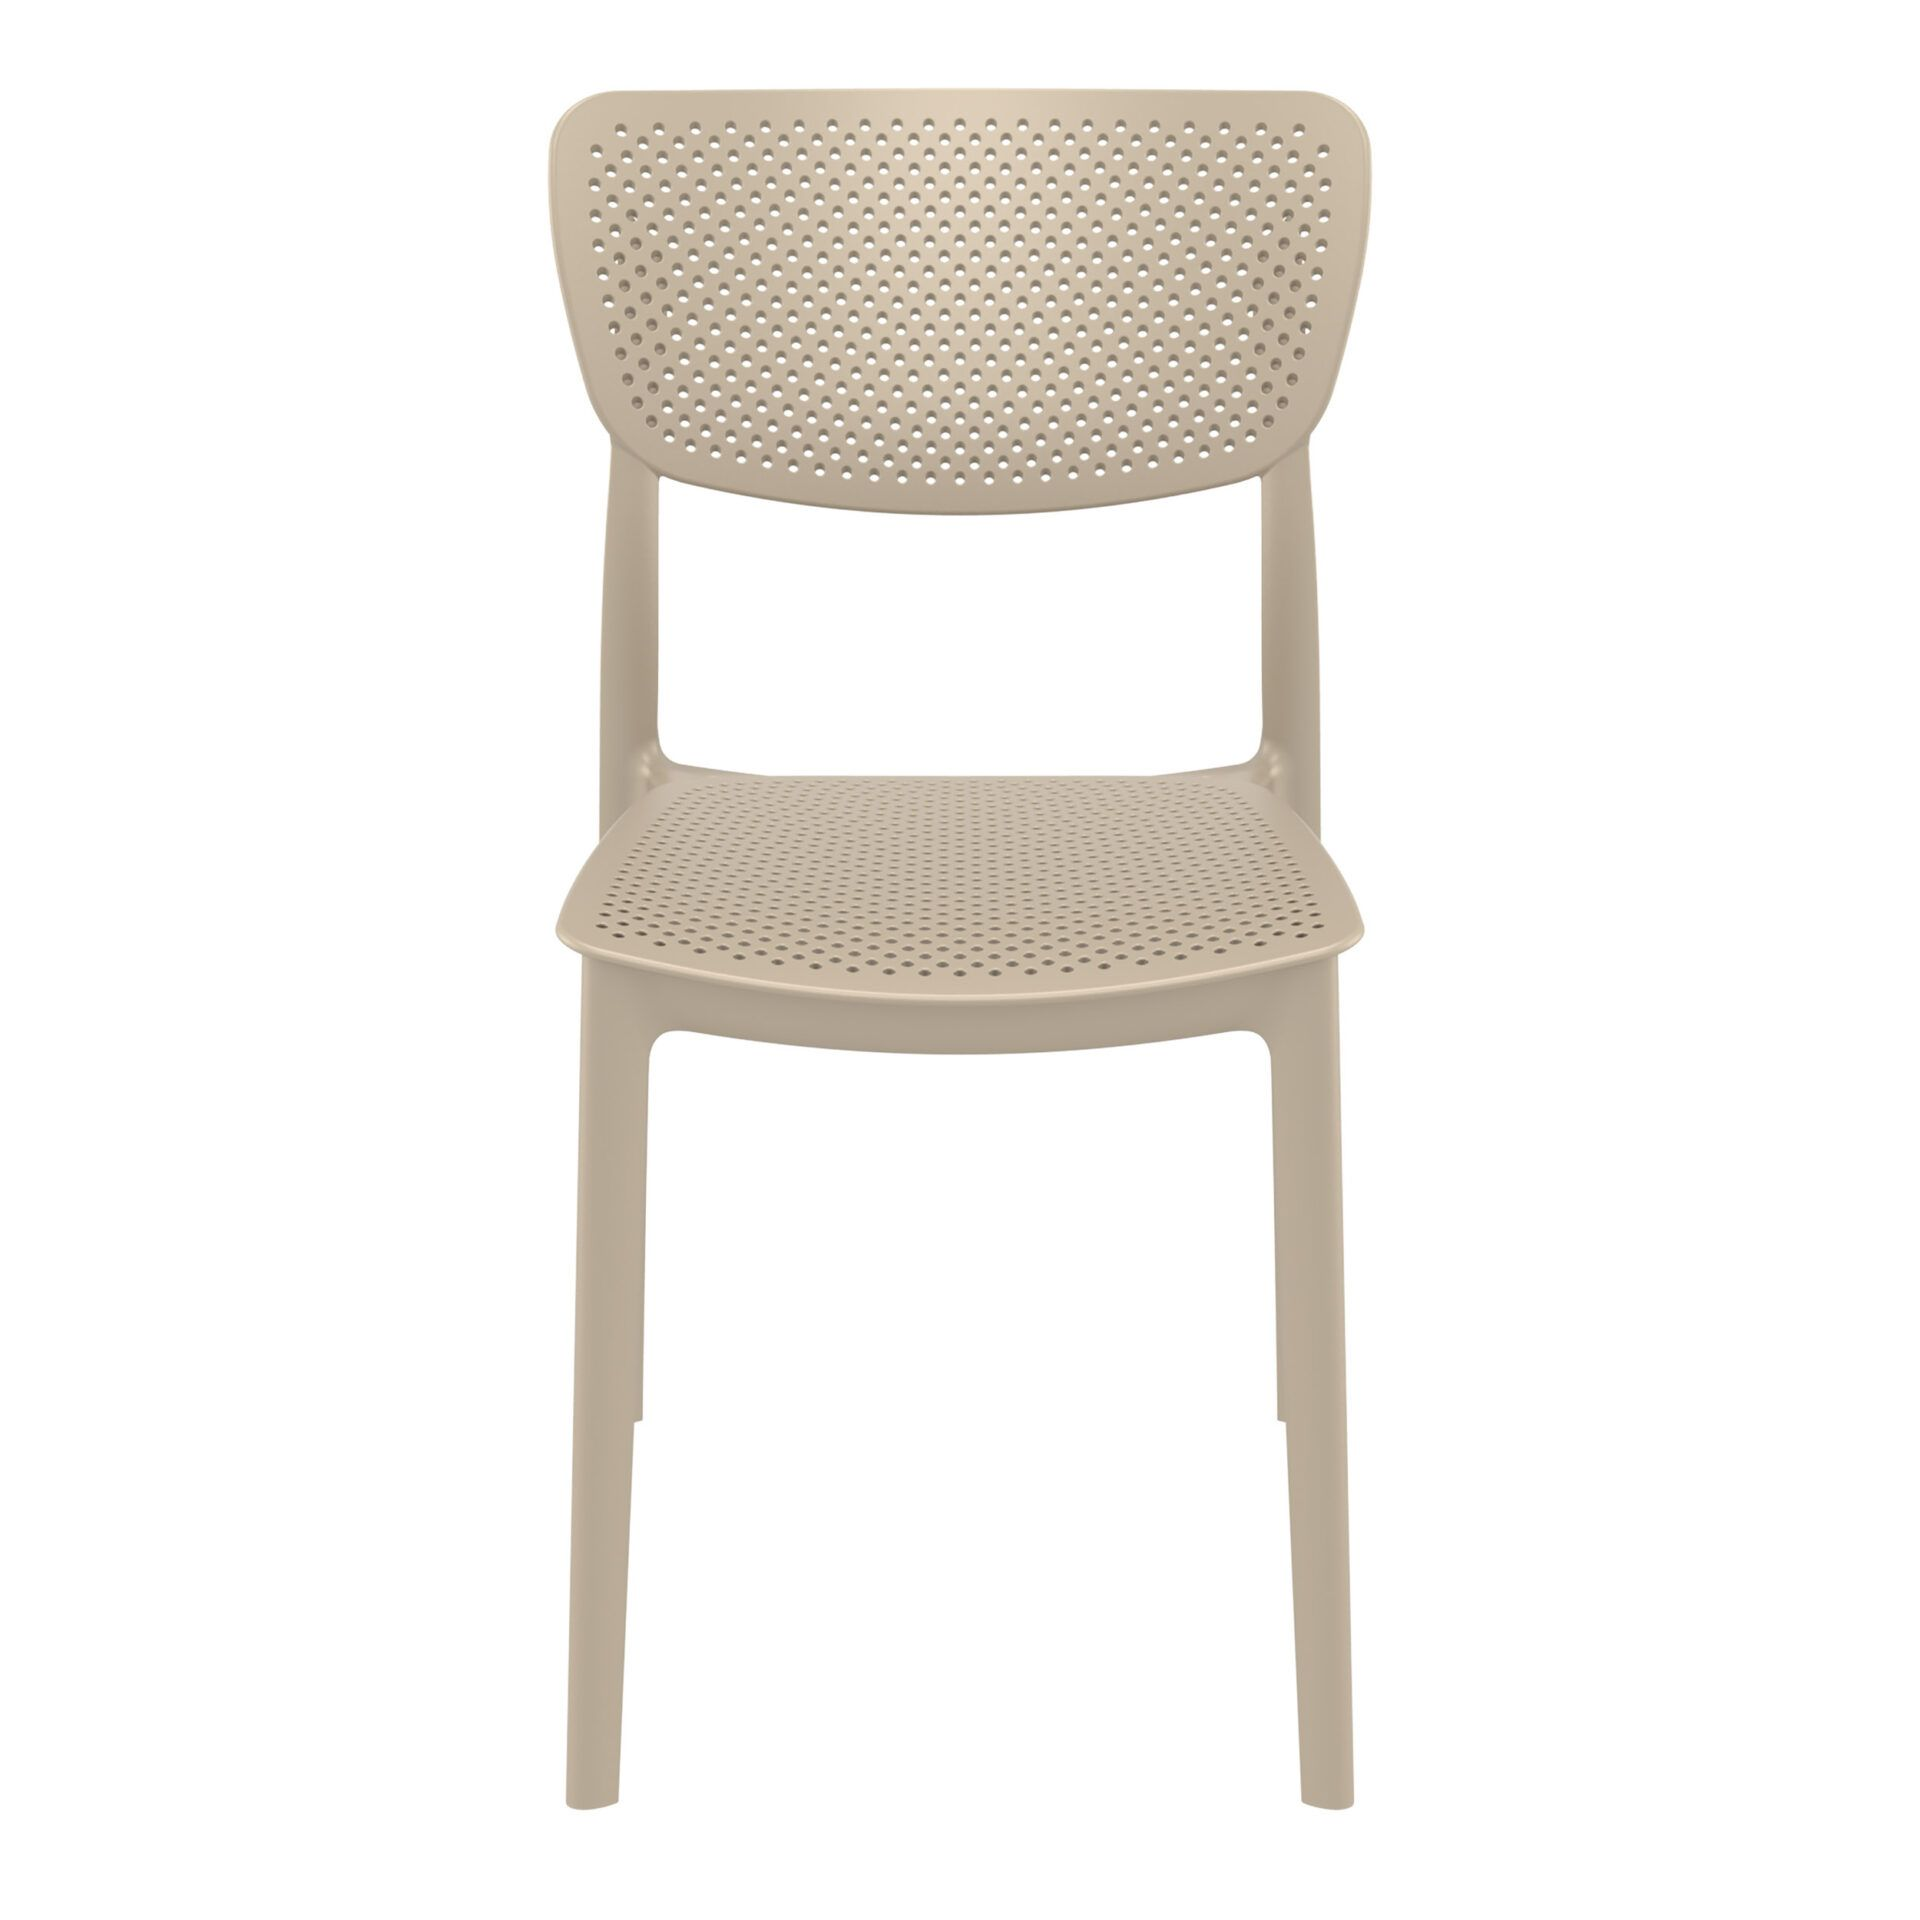 polypropylene hospitality seating lucy chair taupe front